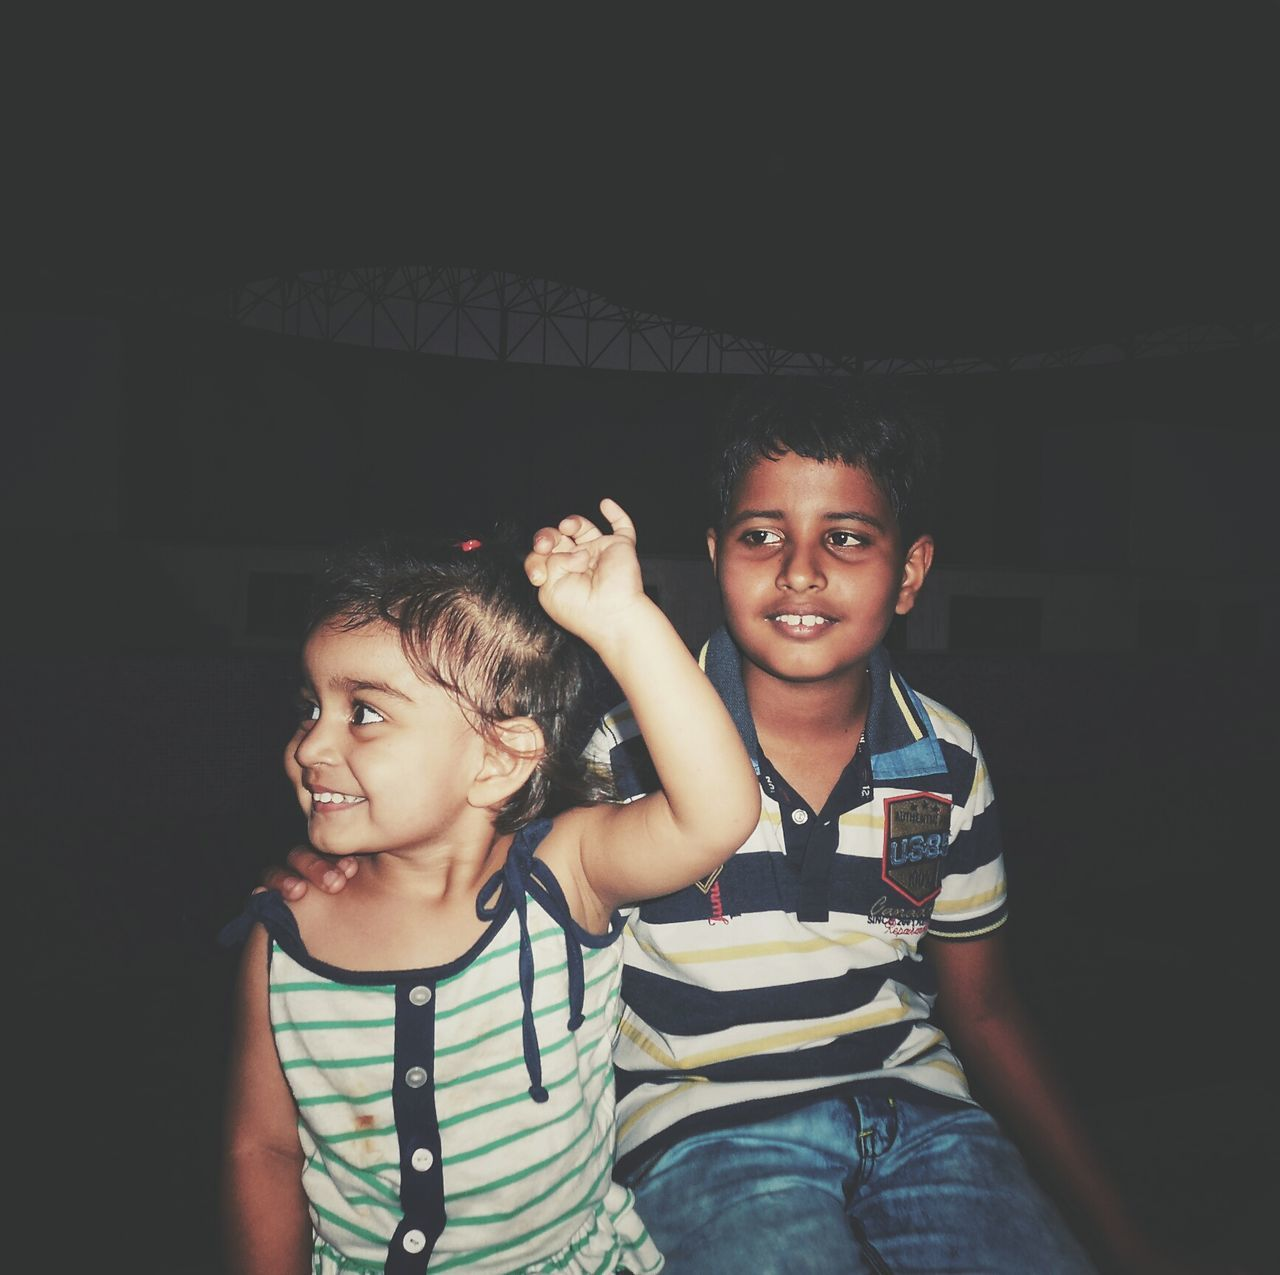 Two People Happiness Child Portrait Smiling Looking At Camera Friendship Lifestyles Cheerful Togetherness Night People Fun Leisure Activity Young Adult Females Childhood Young Women Real People Indoors  Awesome Day Awesome_shots AWESOME!!